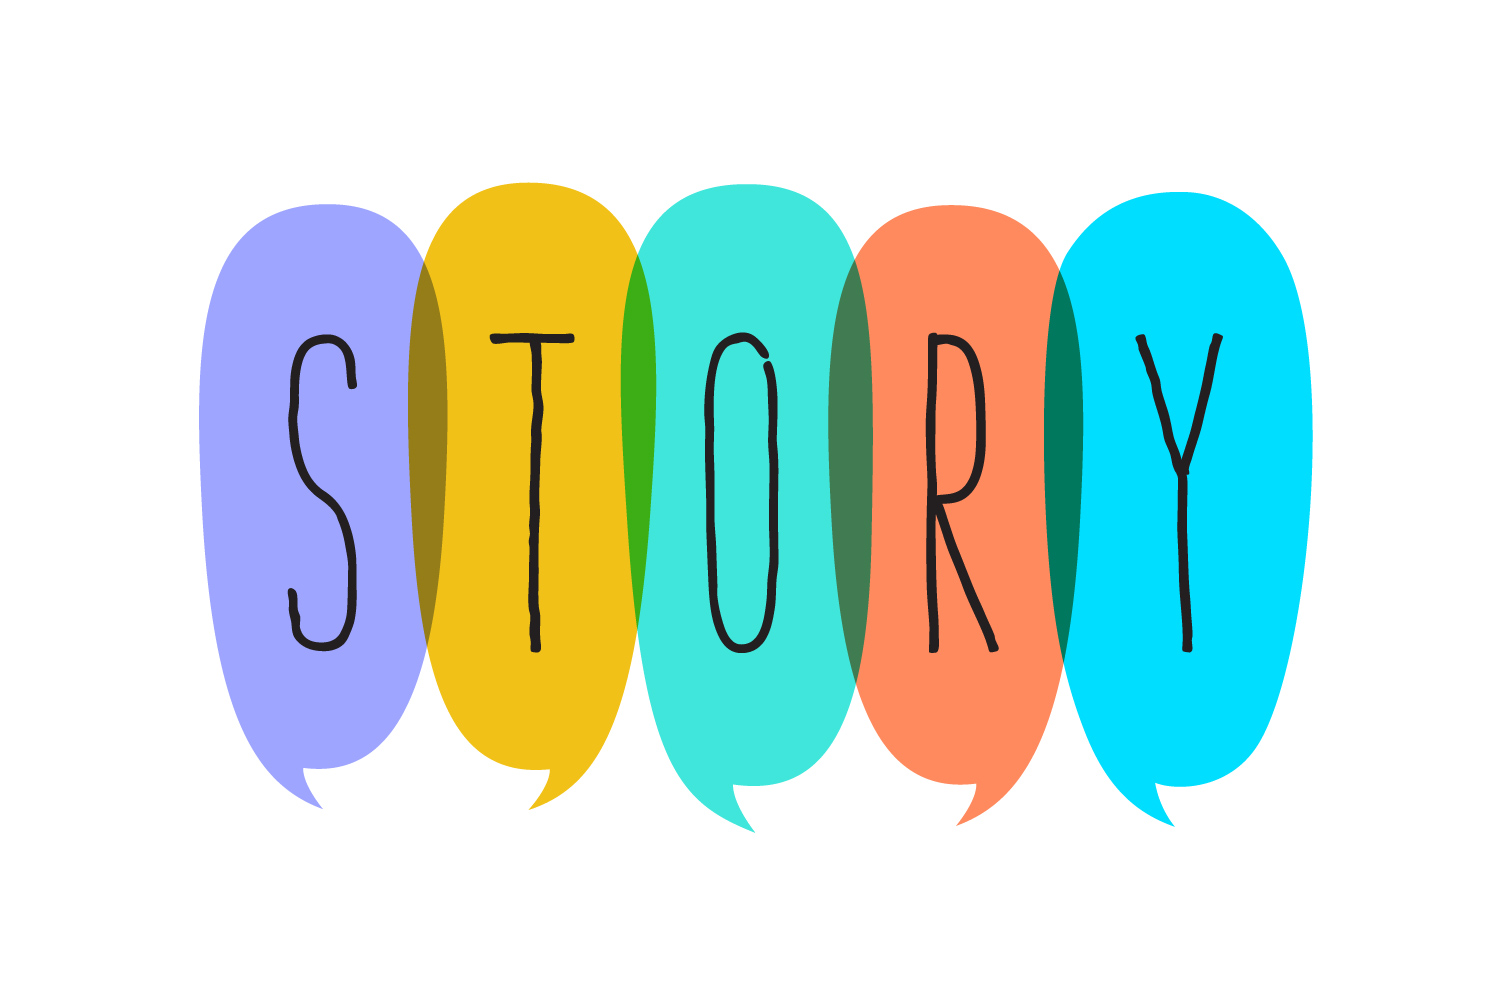 Stories – COVID-19 Resources